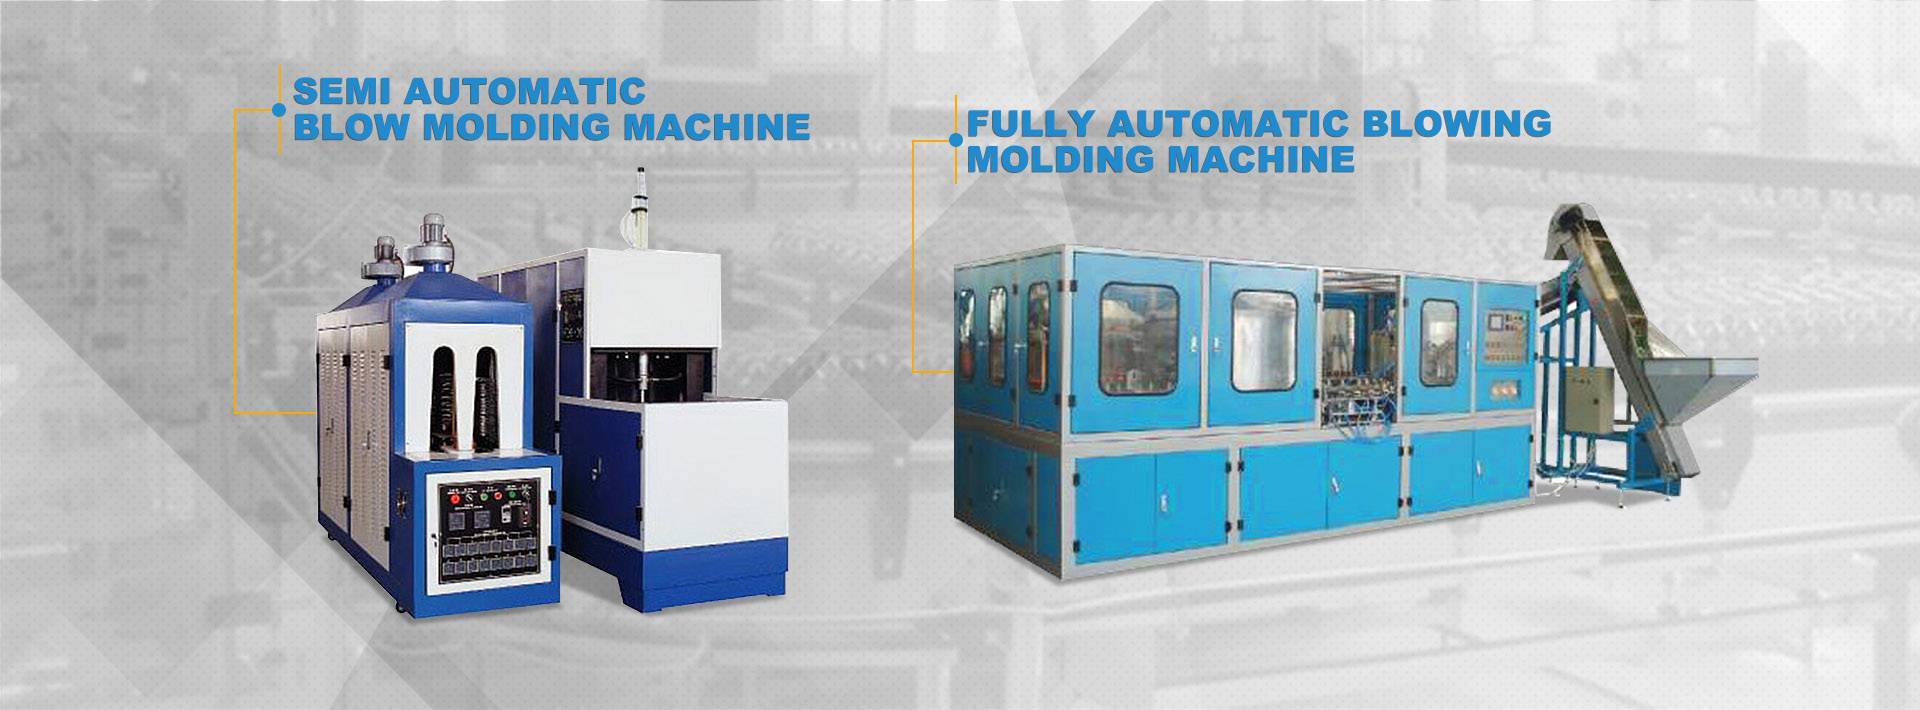 Semi Automatic Blow Molding Machine